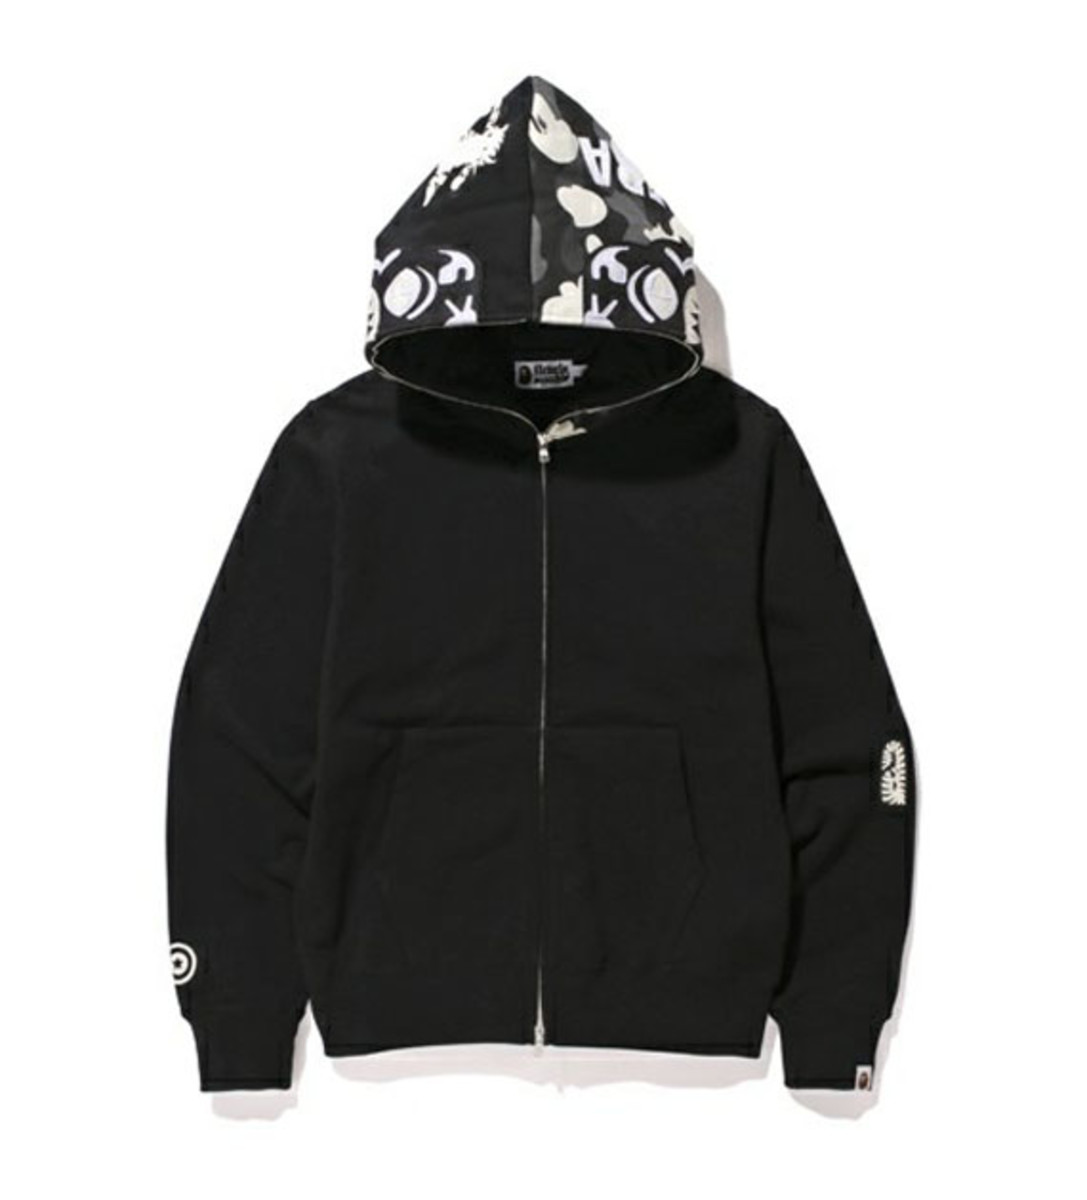 a-bathing-ape-glow-in-the-dark-collection-06